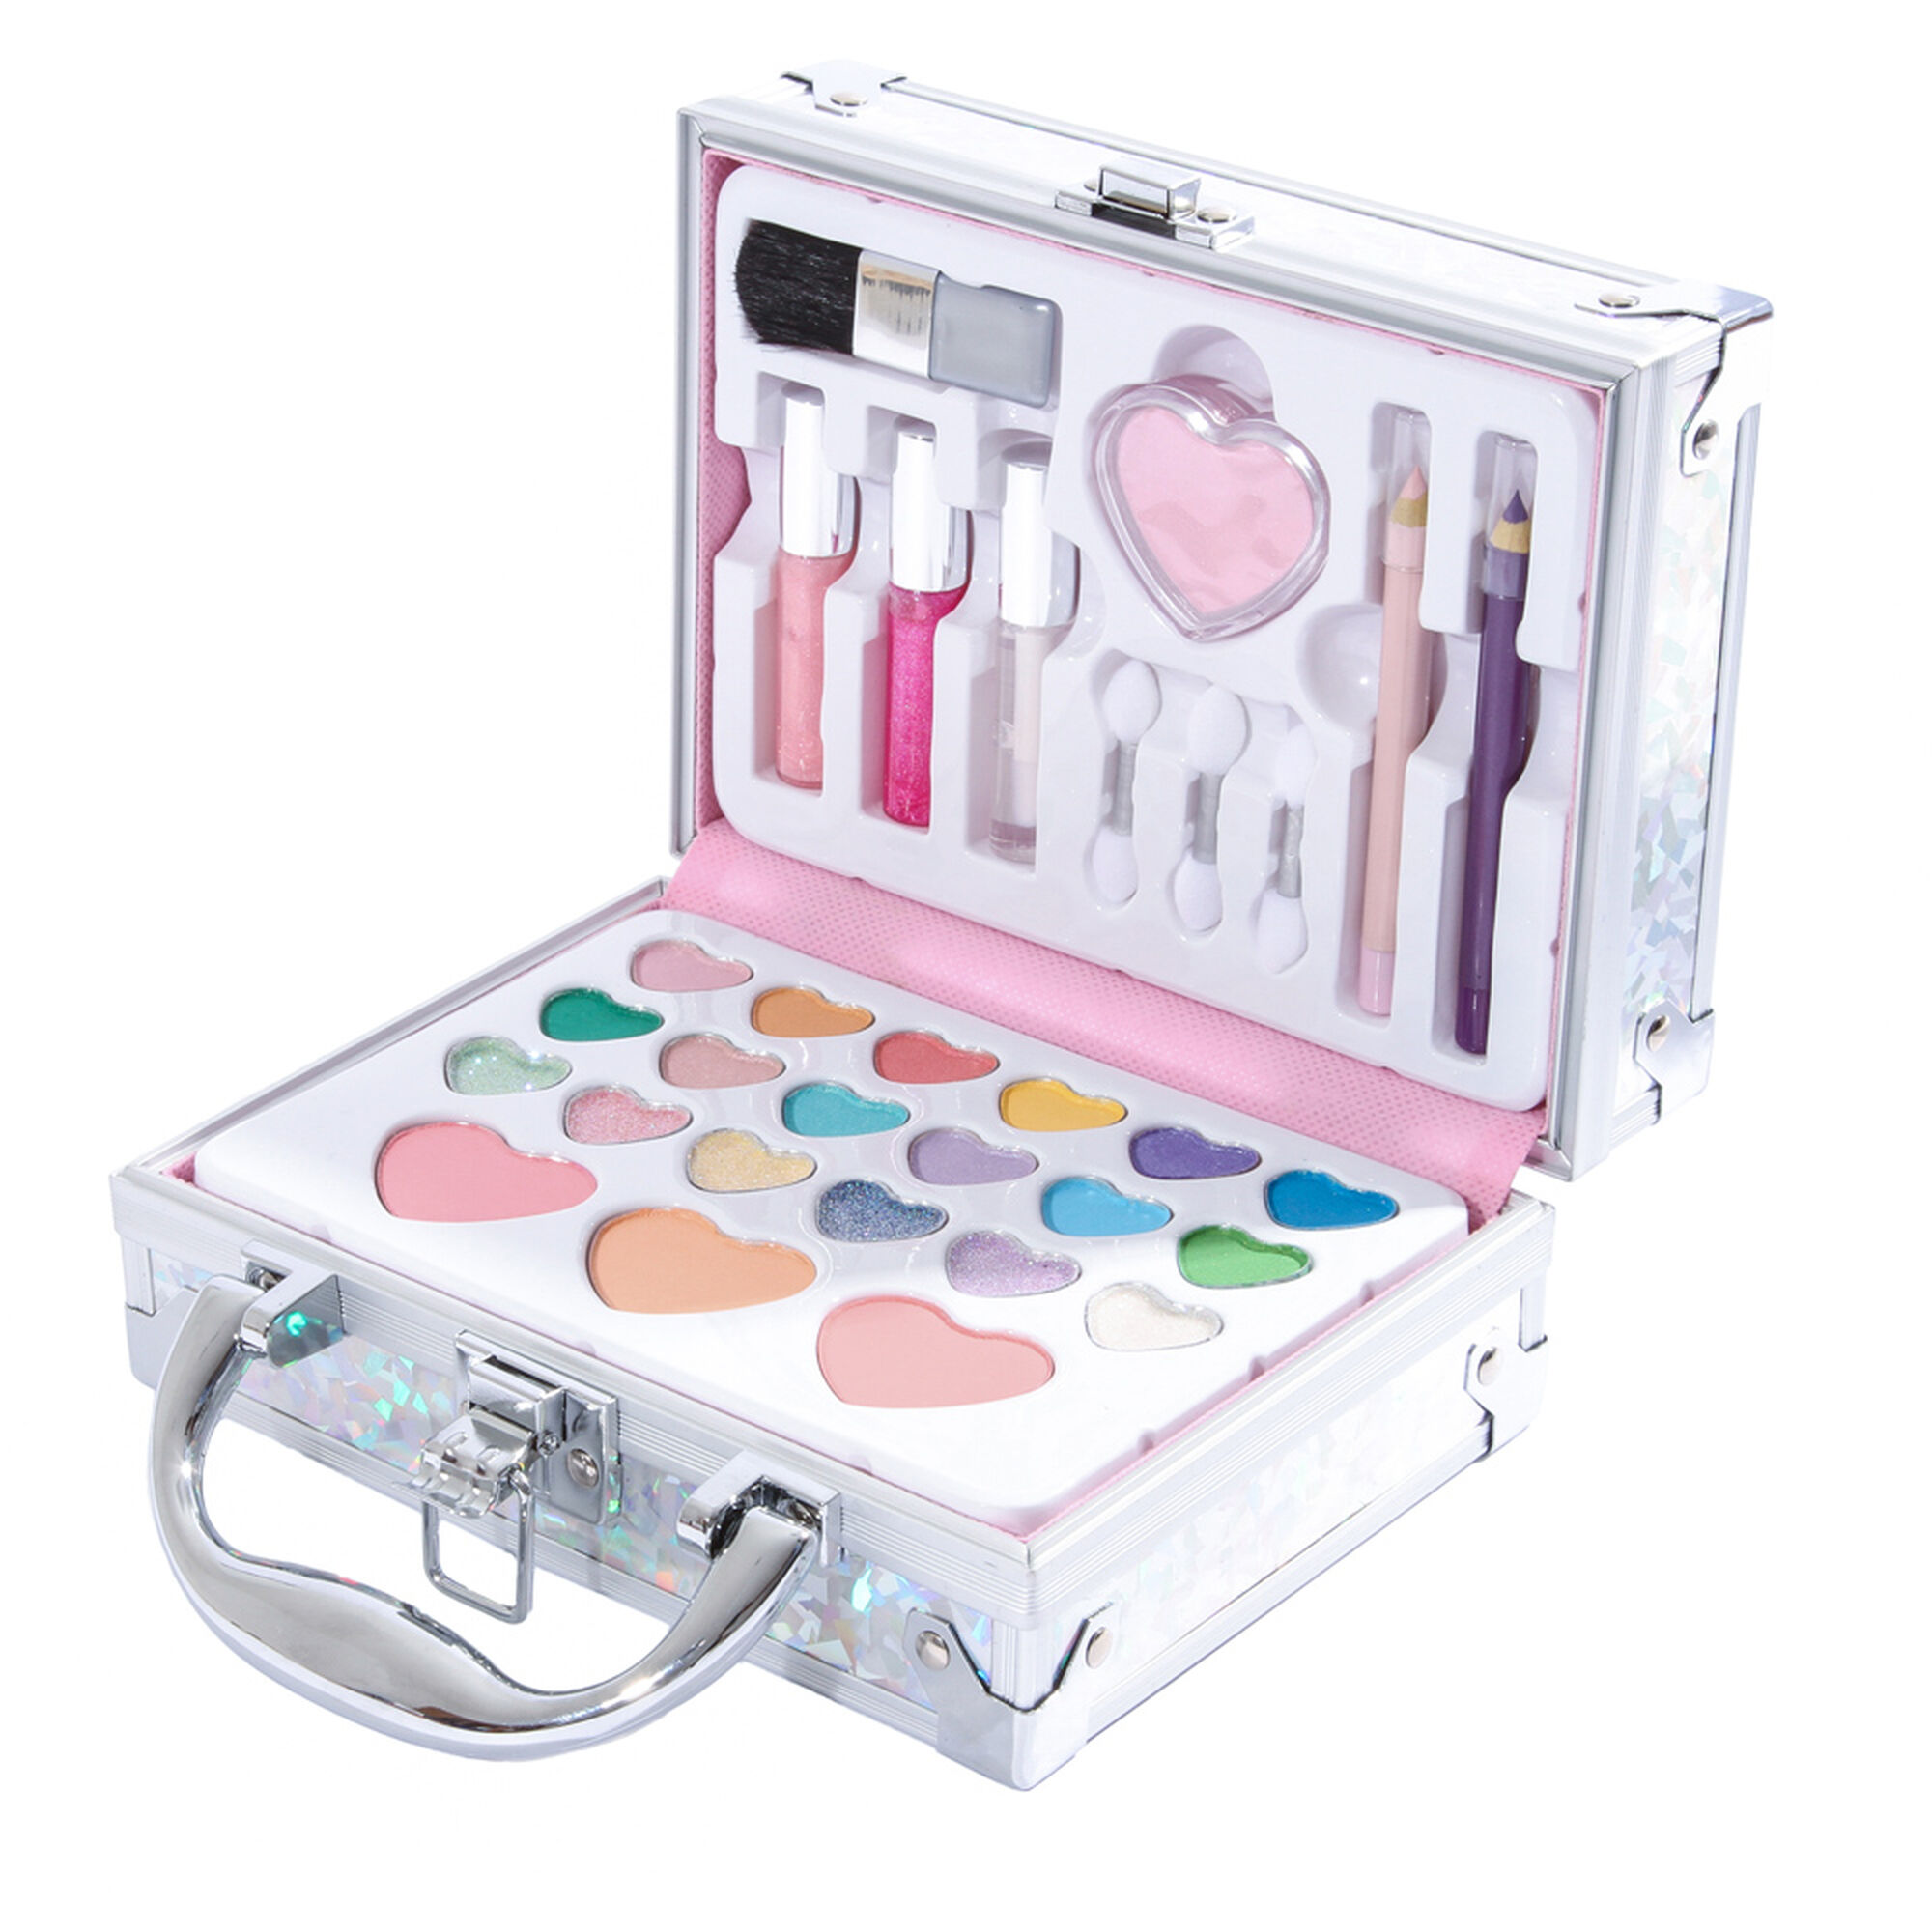 Search for rolling makeup case Preisvergleich, Testbericht und KaufberatungEnjoy big savings · 95% customer satisfaction · Huge SelectionGoods: Clothing and Accessories, Jewelry and Watches, Sunglasses and Eyewear.